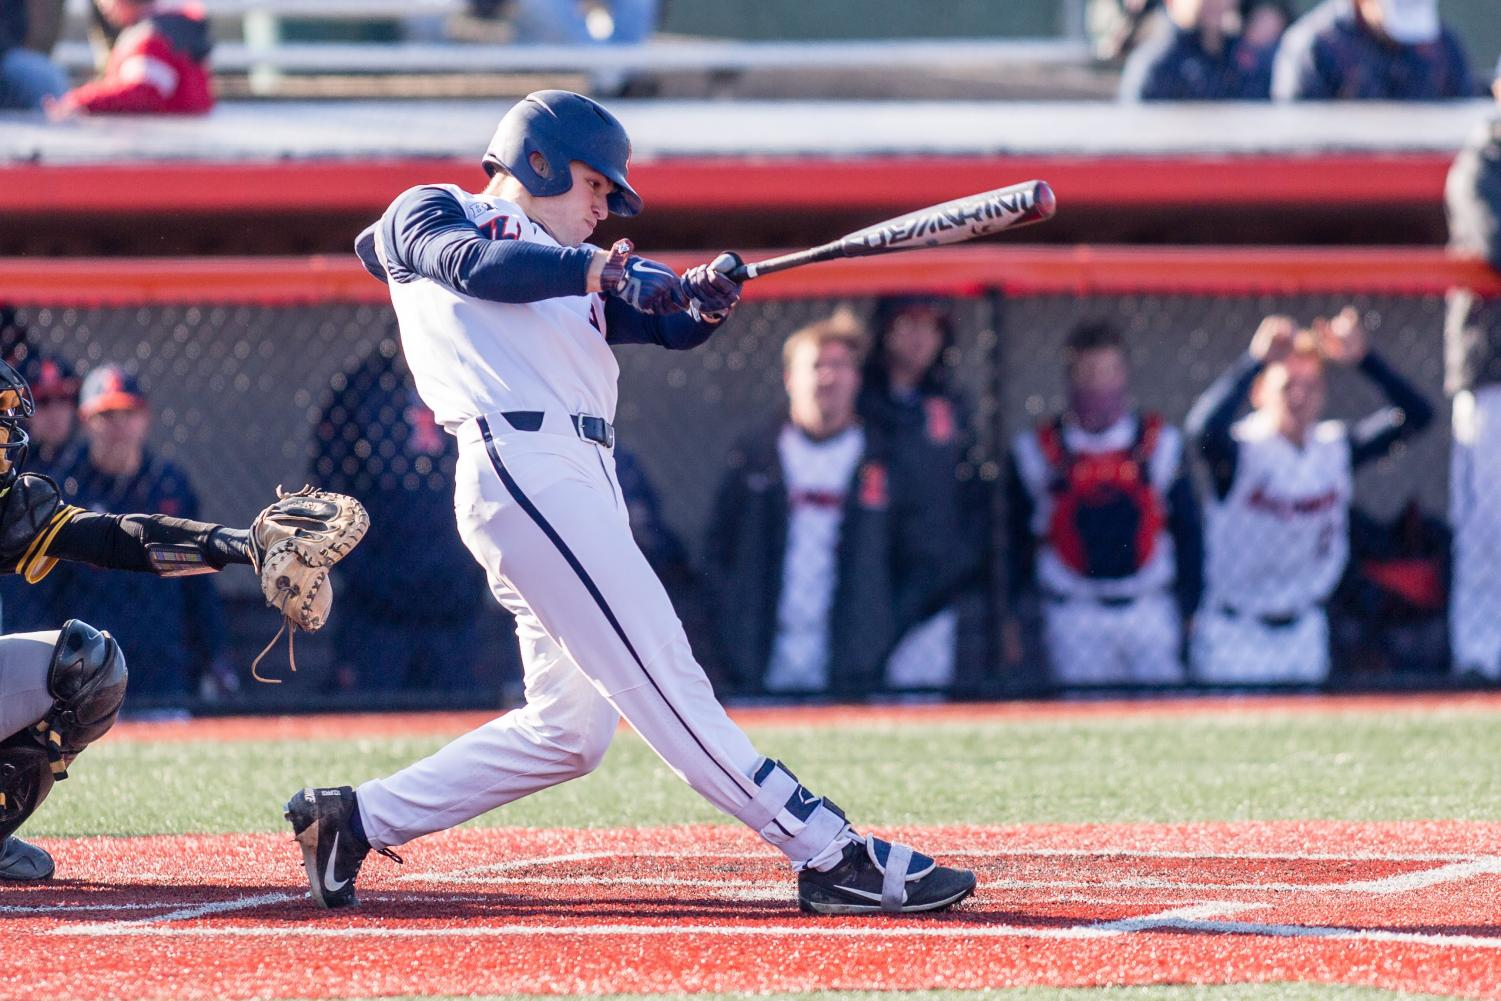 Senior outfielder Jack Yalowitz swings at a pitch during Illinois' game against Milwaukee at Illinois Field on Wednesday March 14, 2018.